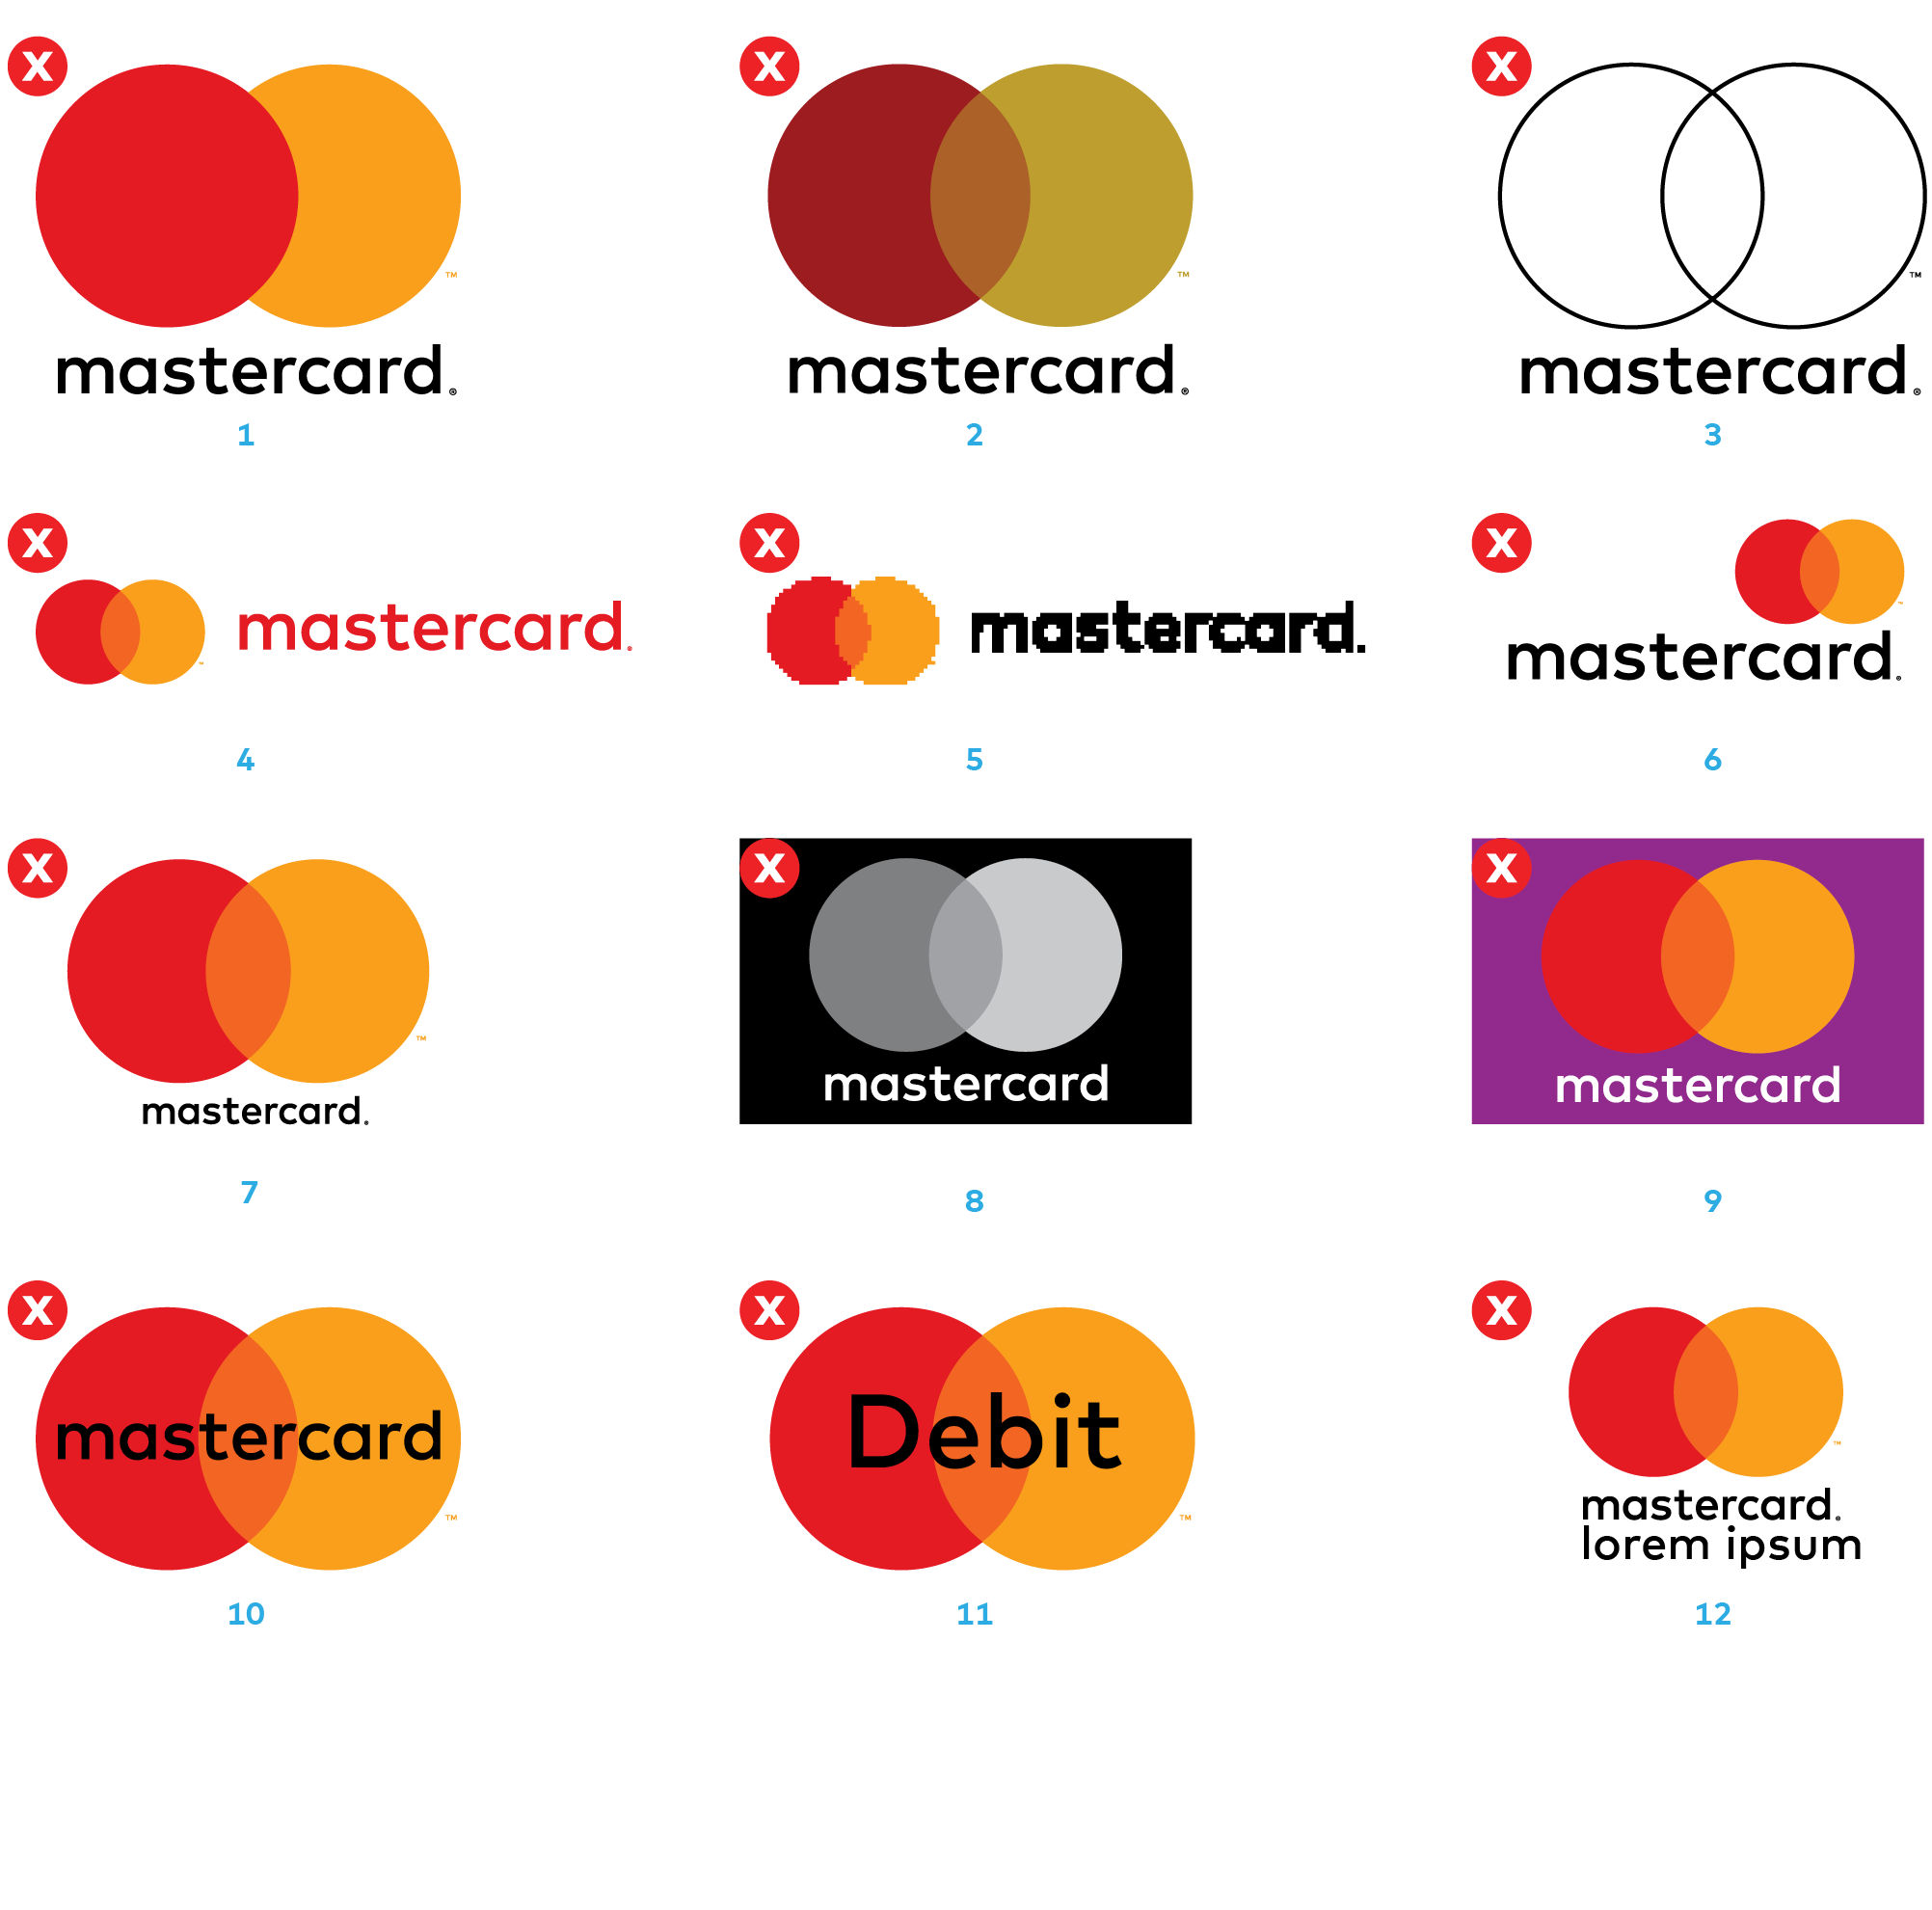 Images of common mistakes made when applying the Mastercard logo